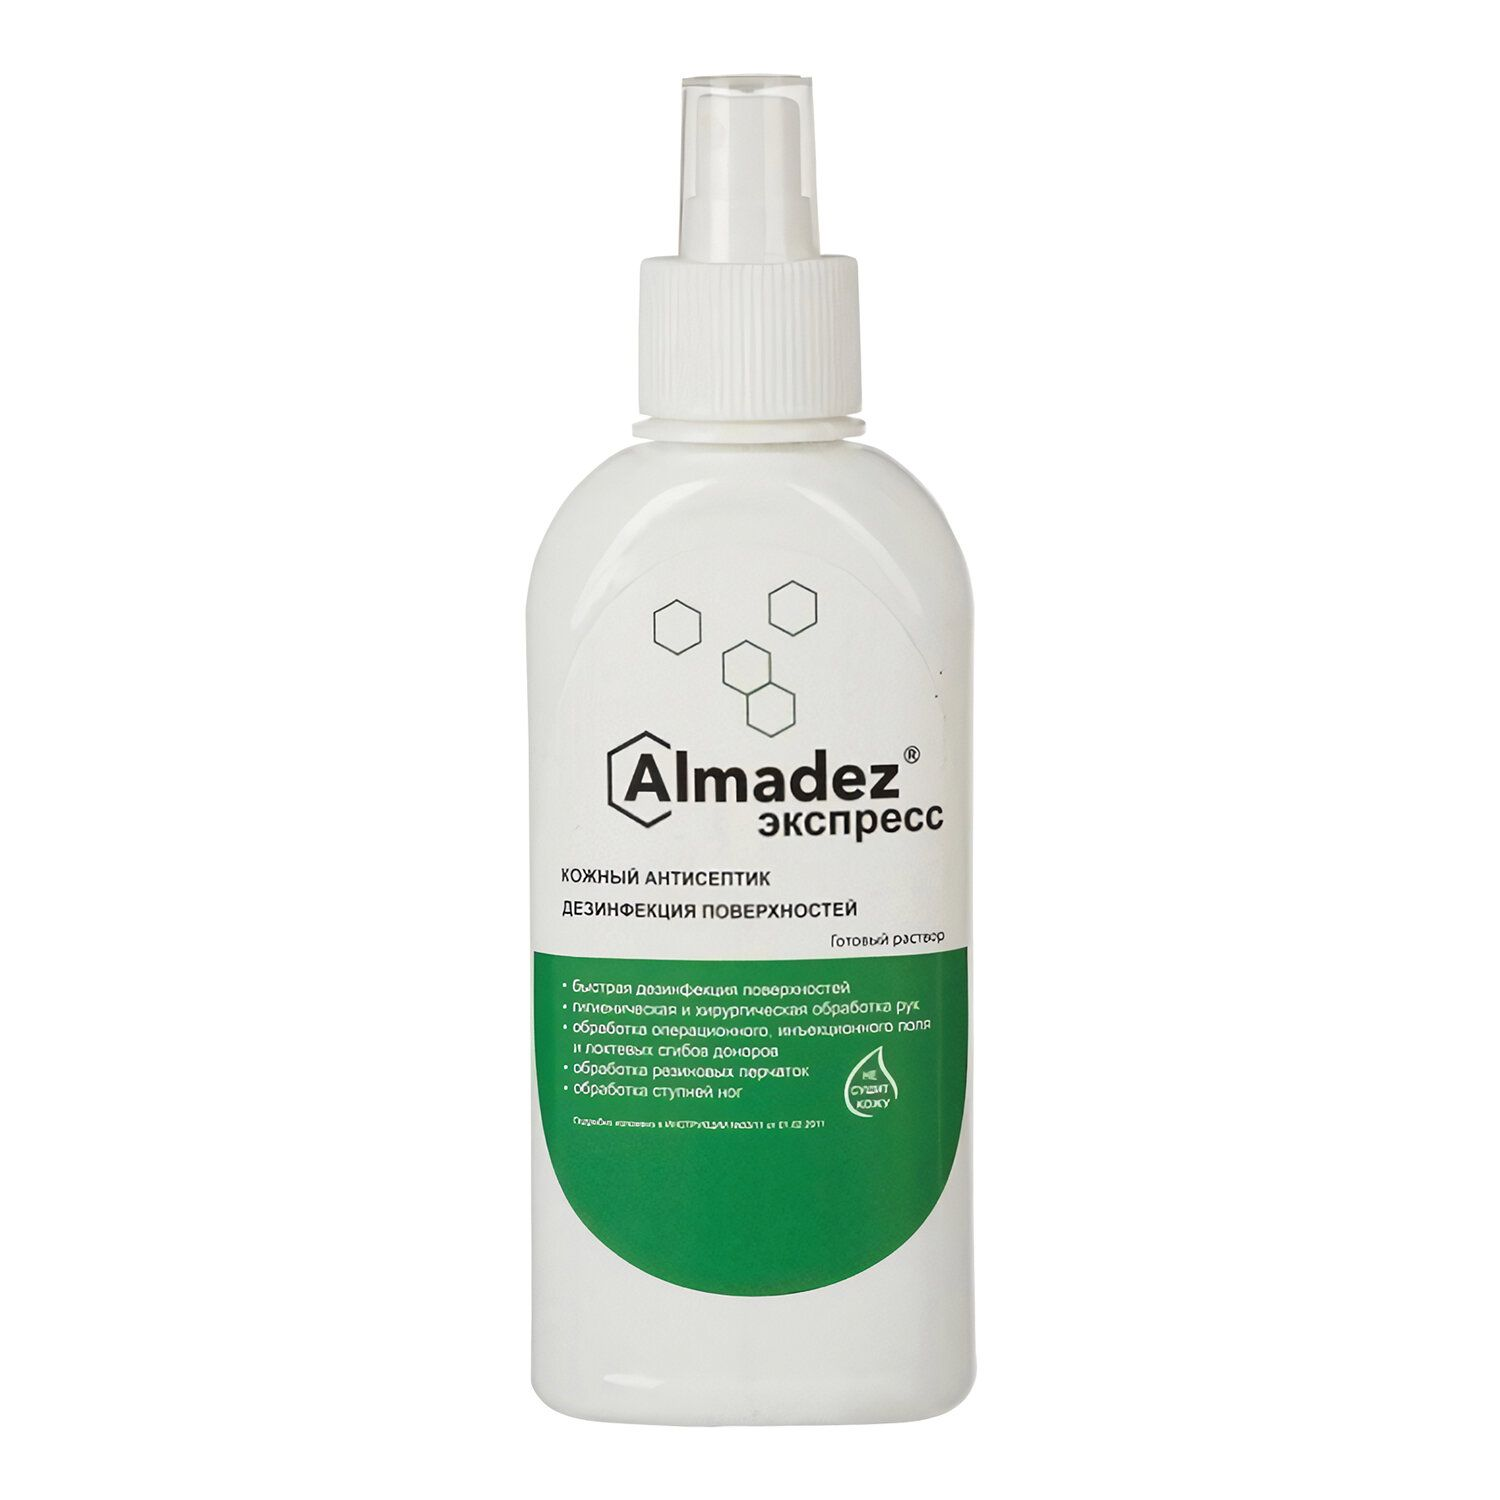 ALMADEZ / Alcohol-containing skin disinfectant antiseptic (63%) EXPRESS, ready-made solution, 250 ml, spray